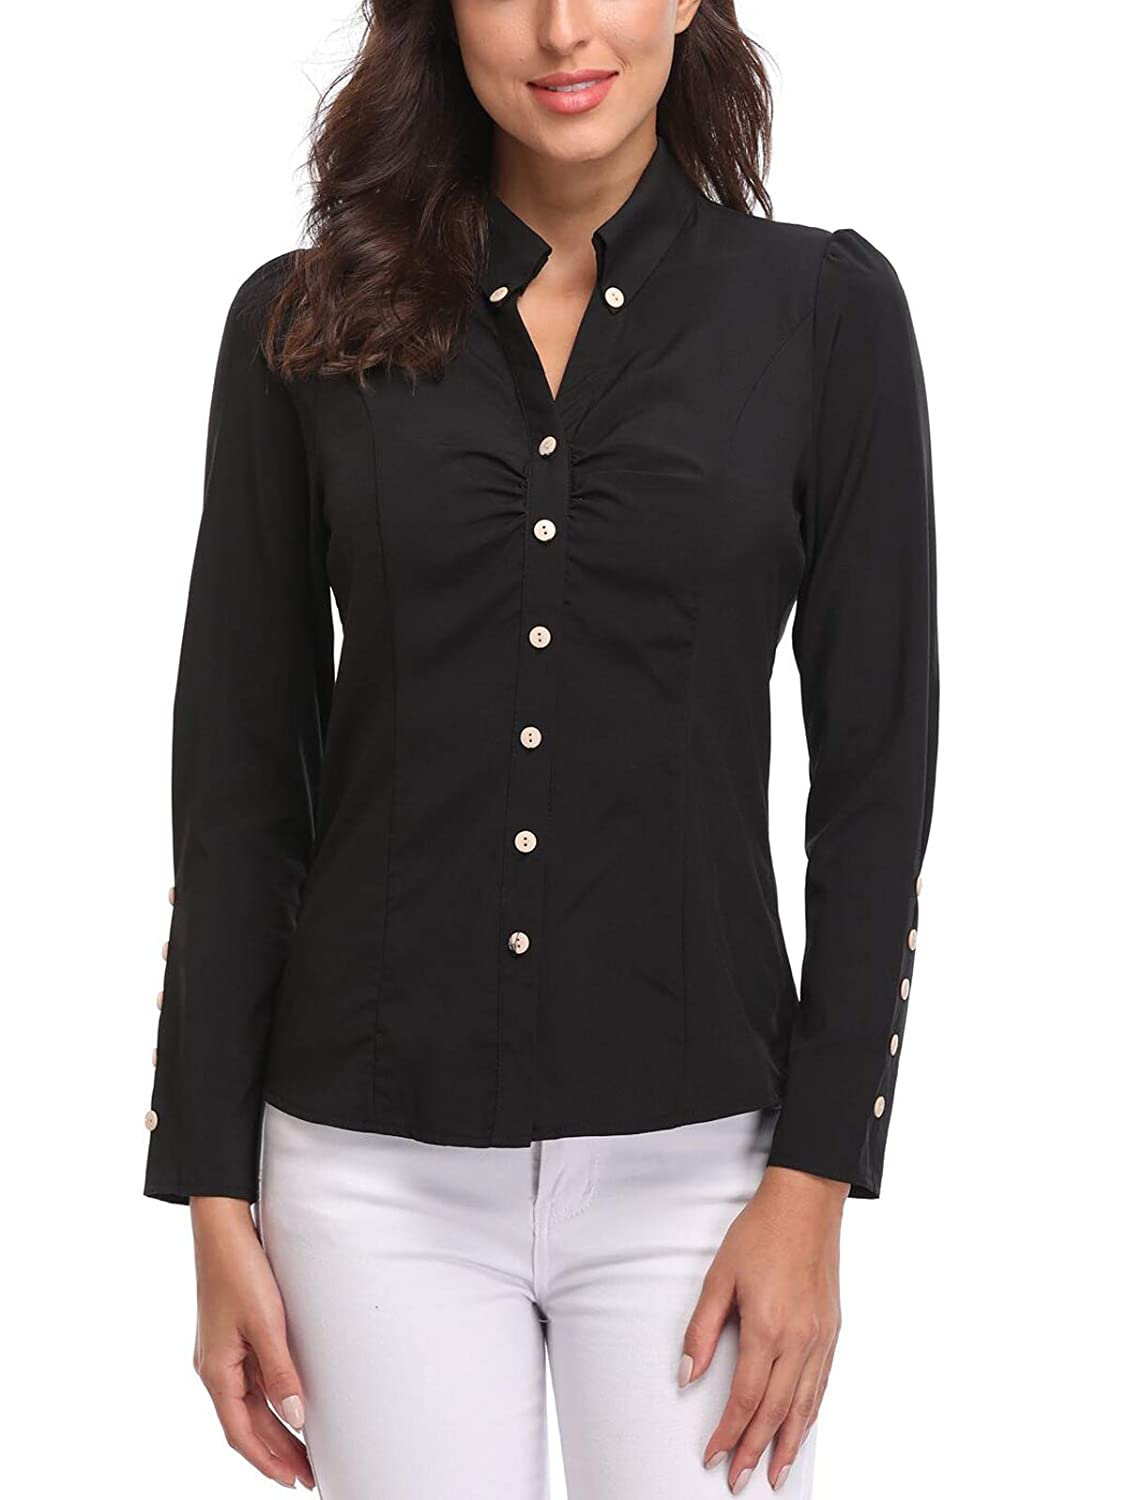 88f5a490c3650 MISS MOLY Women s Formal V Neck Long Sleeve Blouse Top  Amazon.co.uk   Clothing